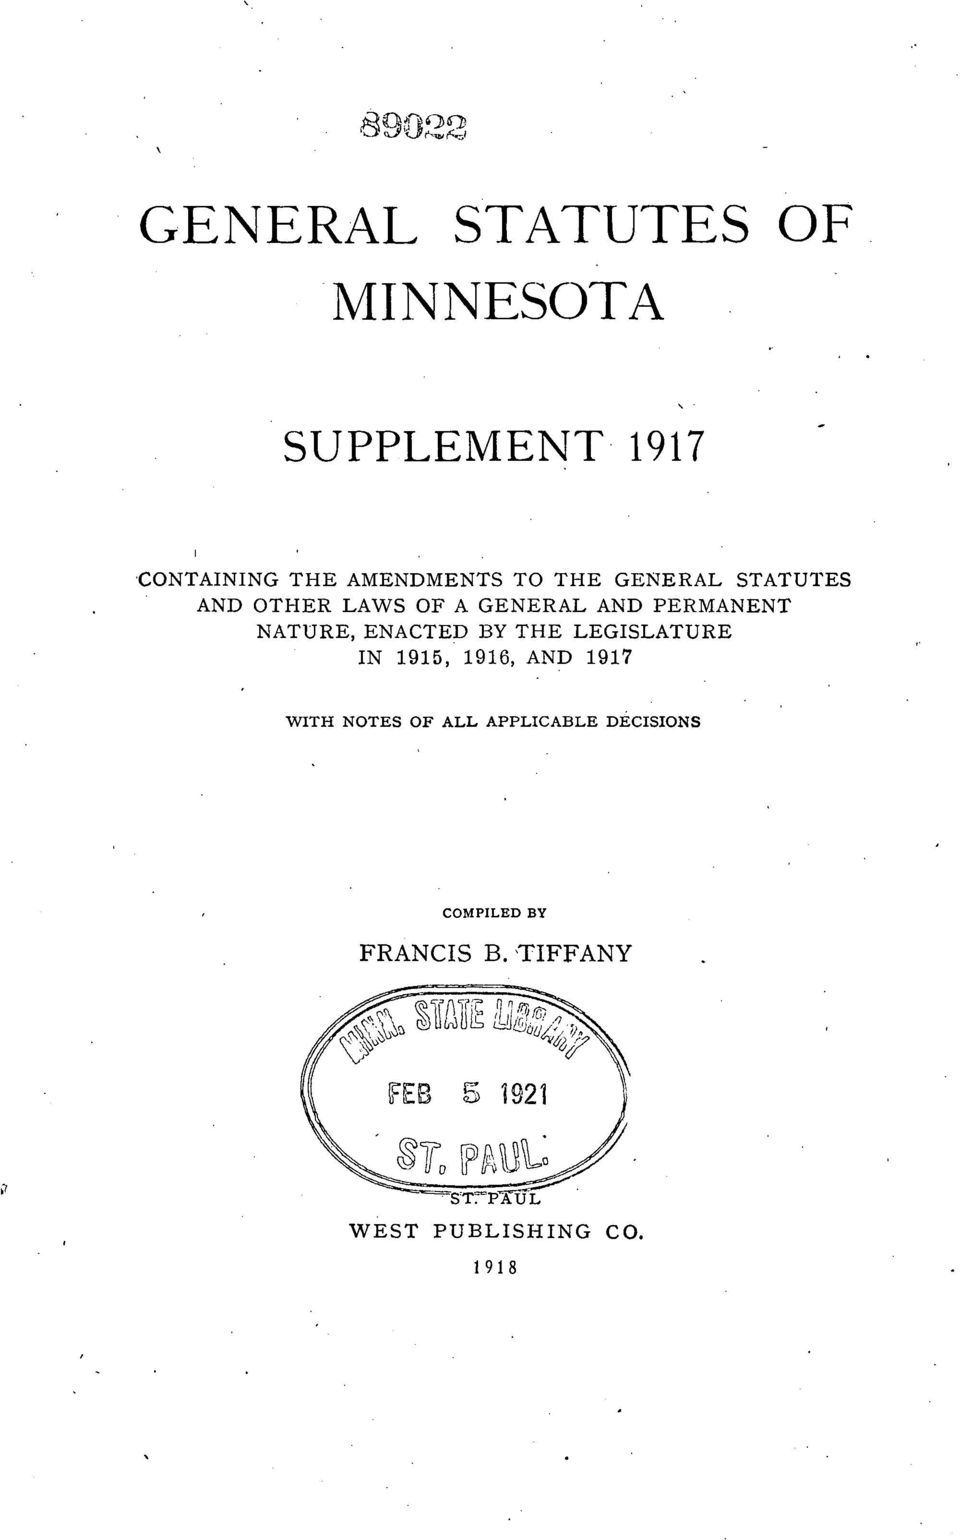 NATURE, ENACTED BY THE LEGISLATURE IN 1915, 1916, AND 1917 WITH NOTES OF ALL